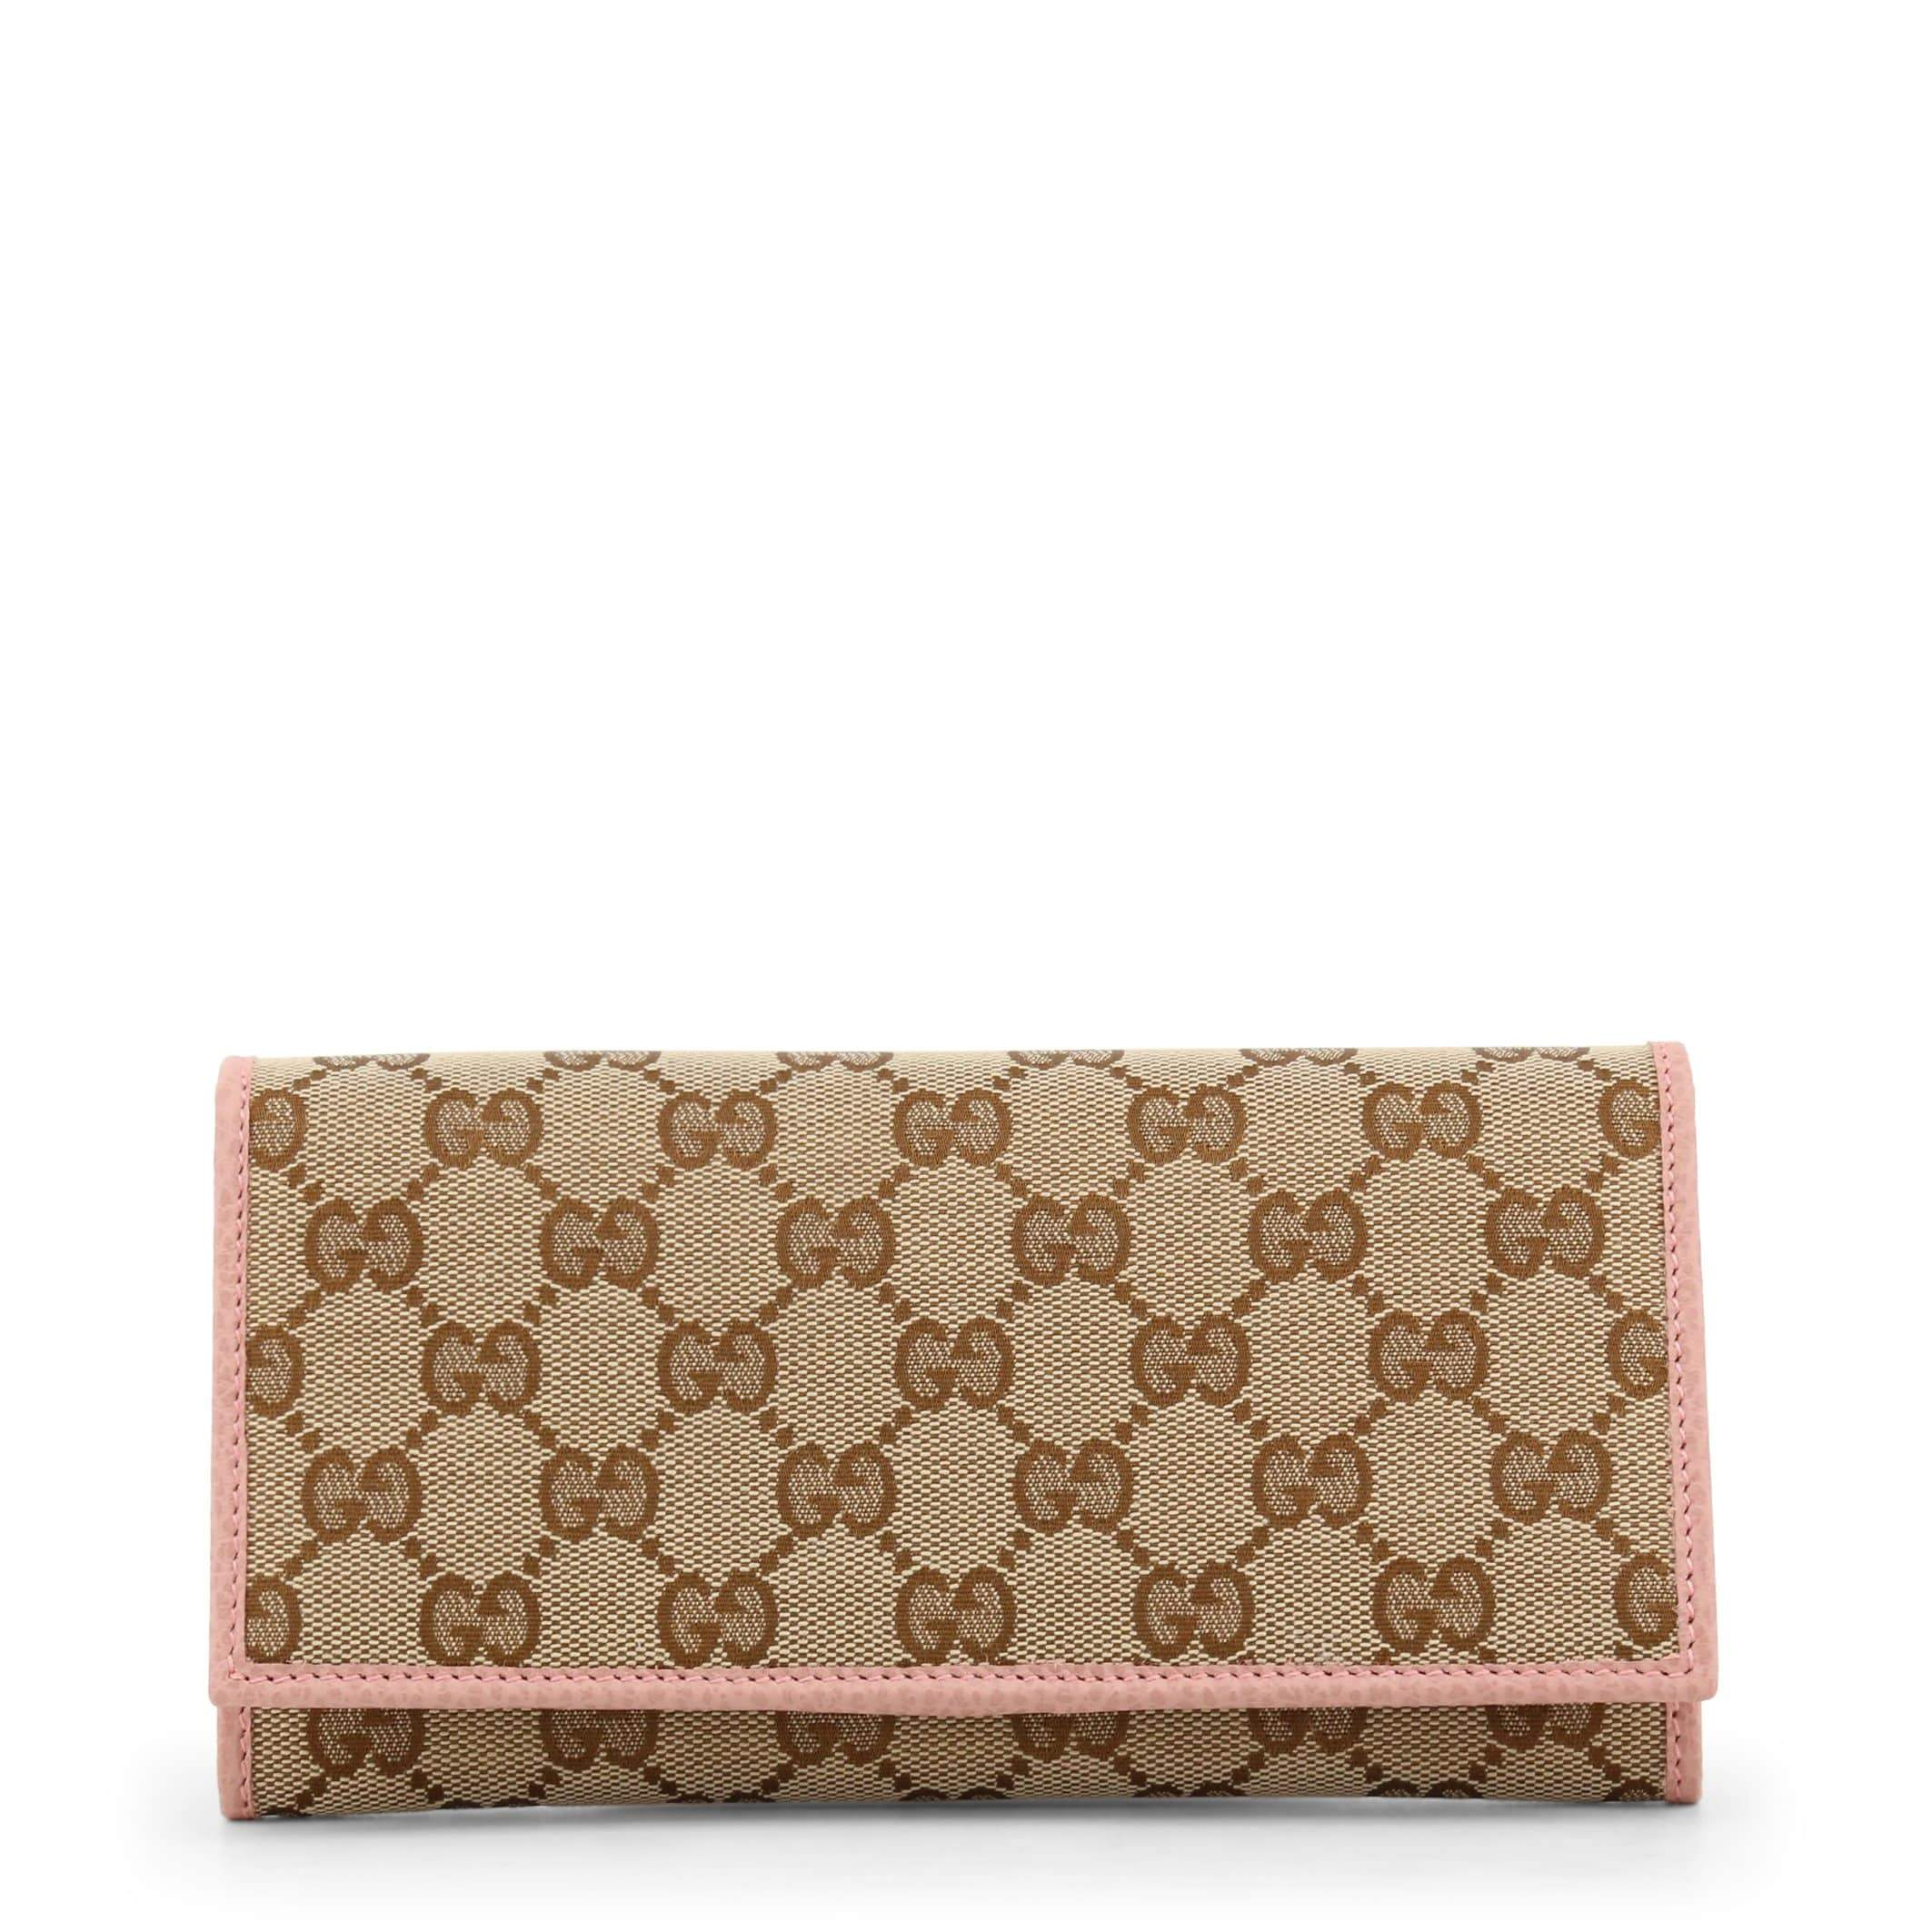 Gucci Accessories Wallets brown-2 / NOSIZE Gucci - 346058_KY9LG